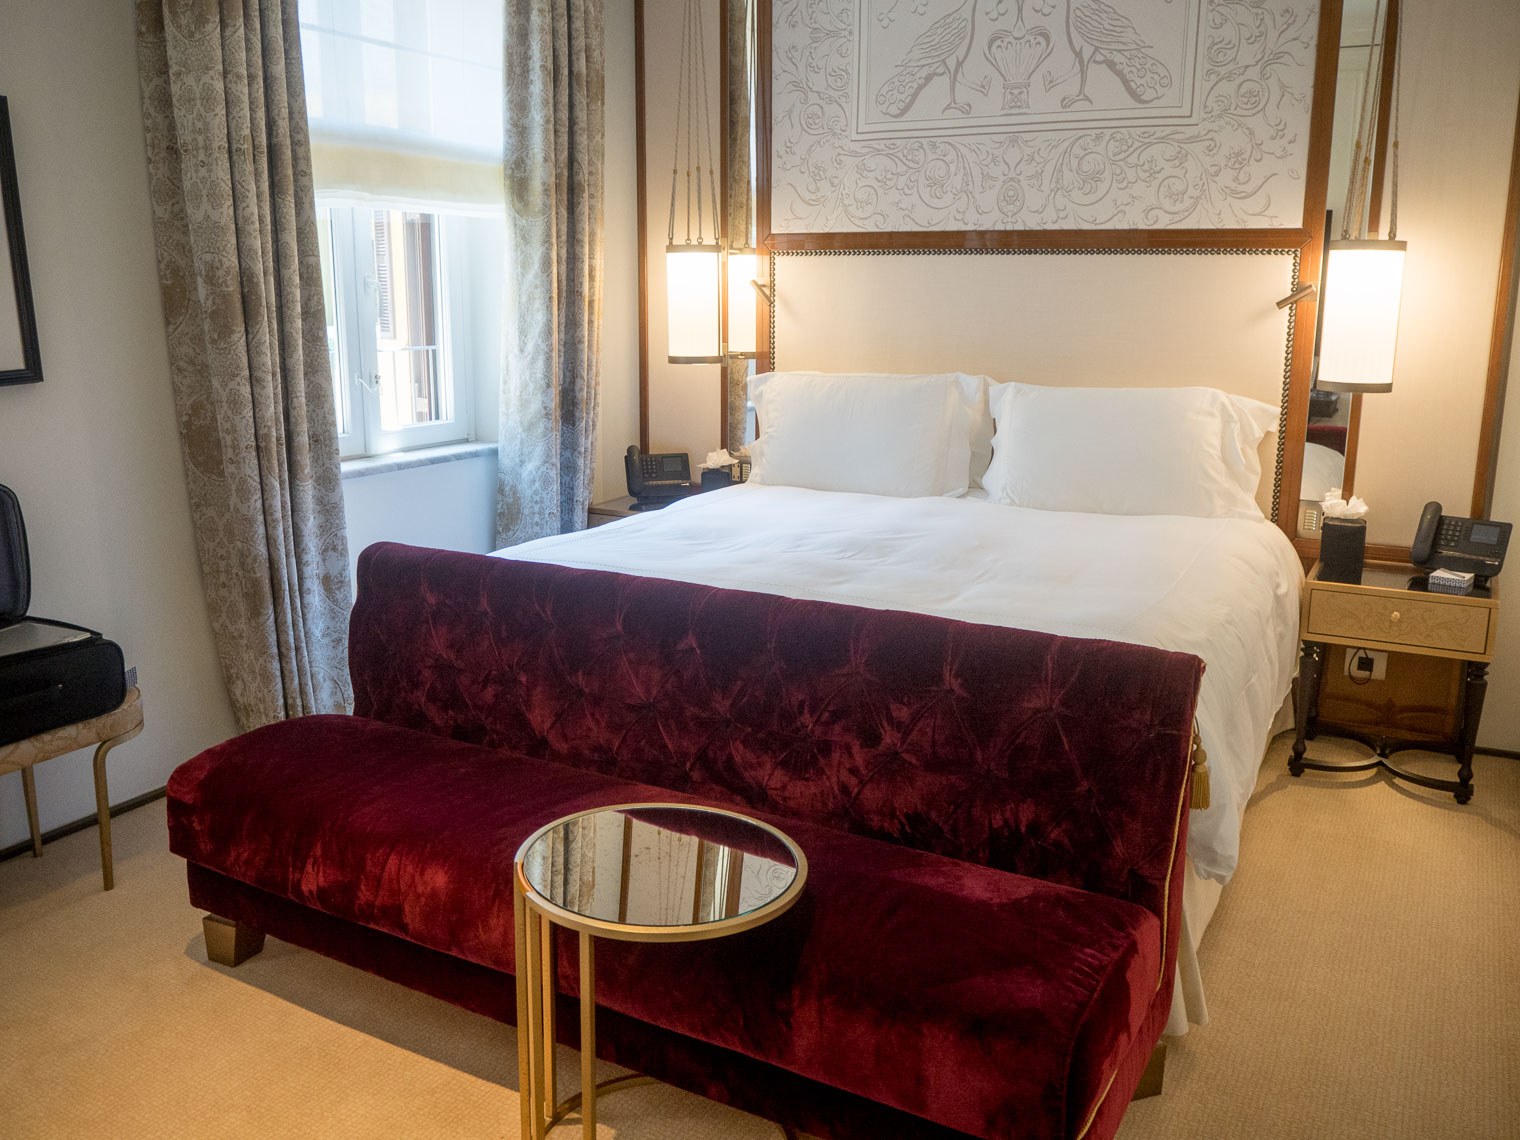 Rooms at the Hotel Eden Rome Dorchester collection